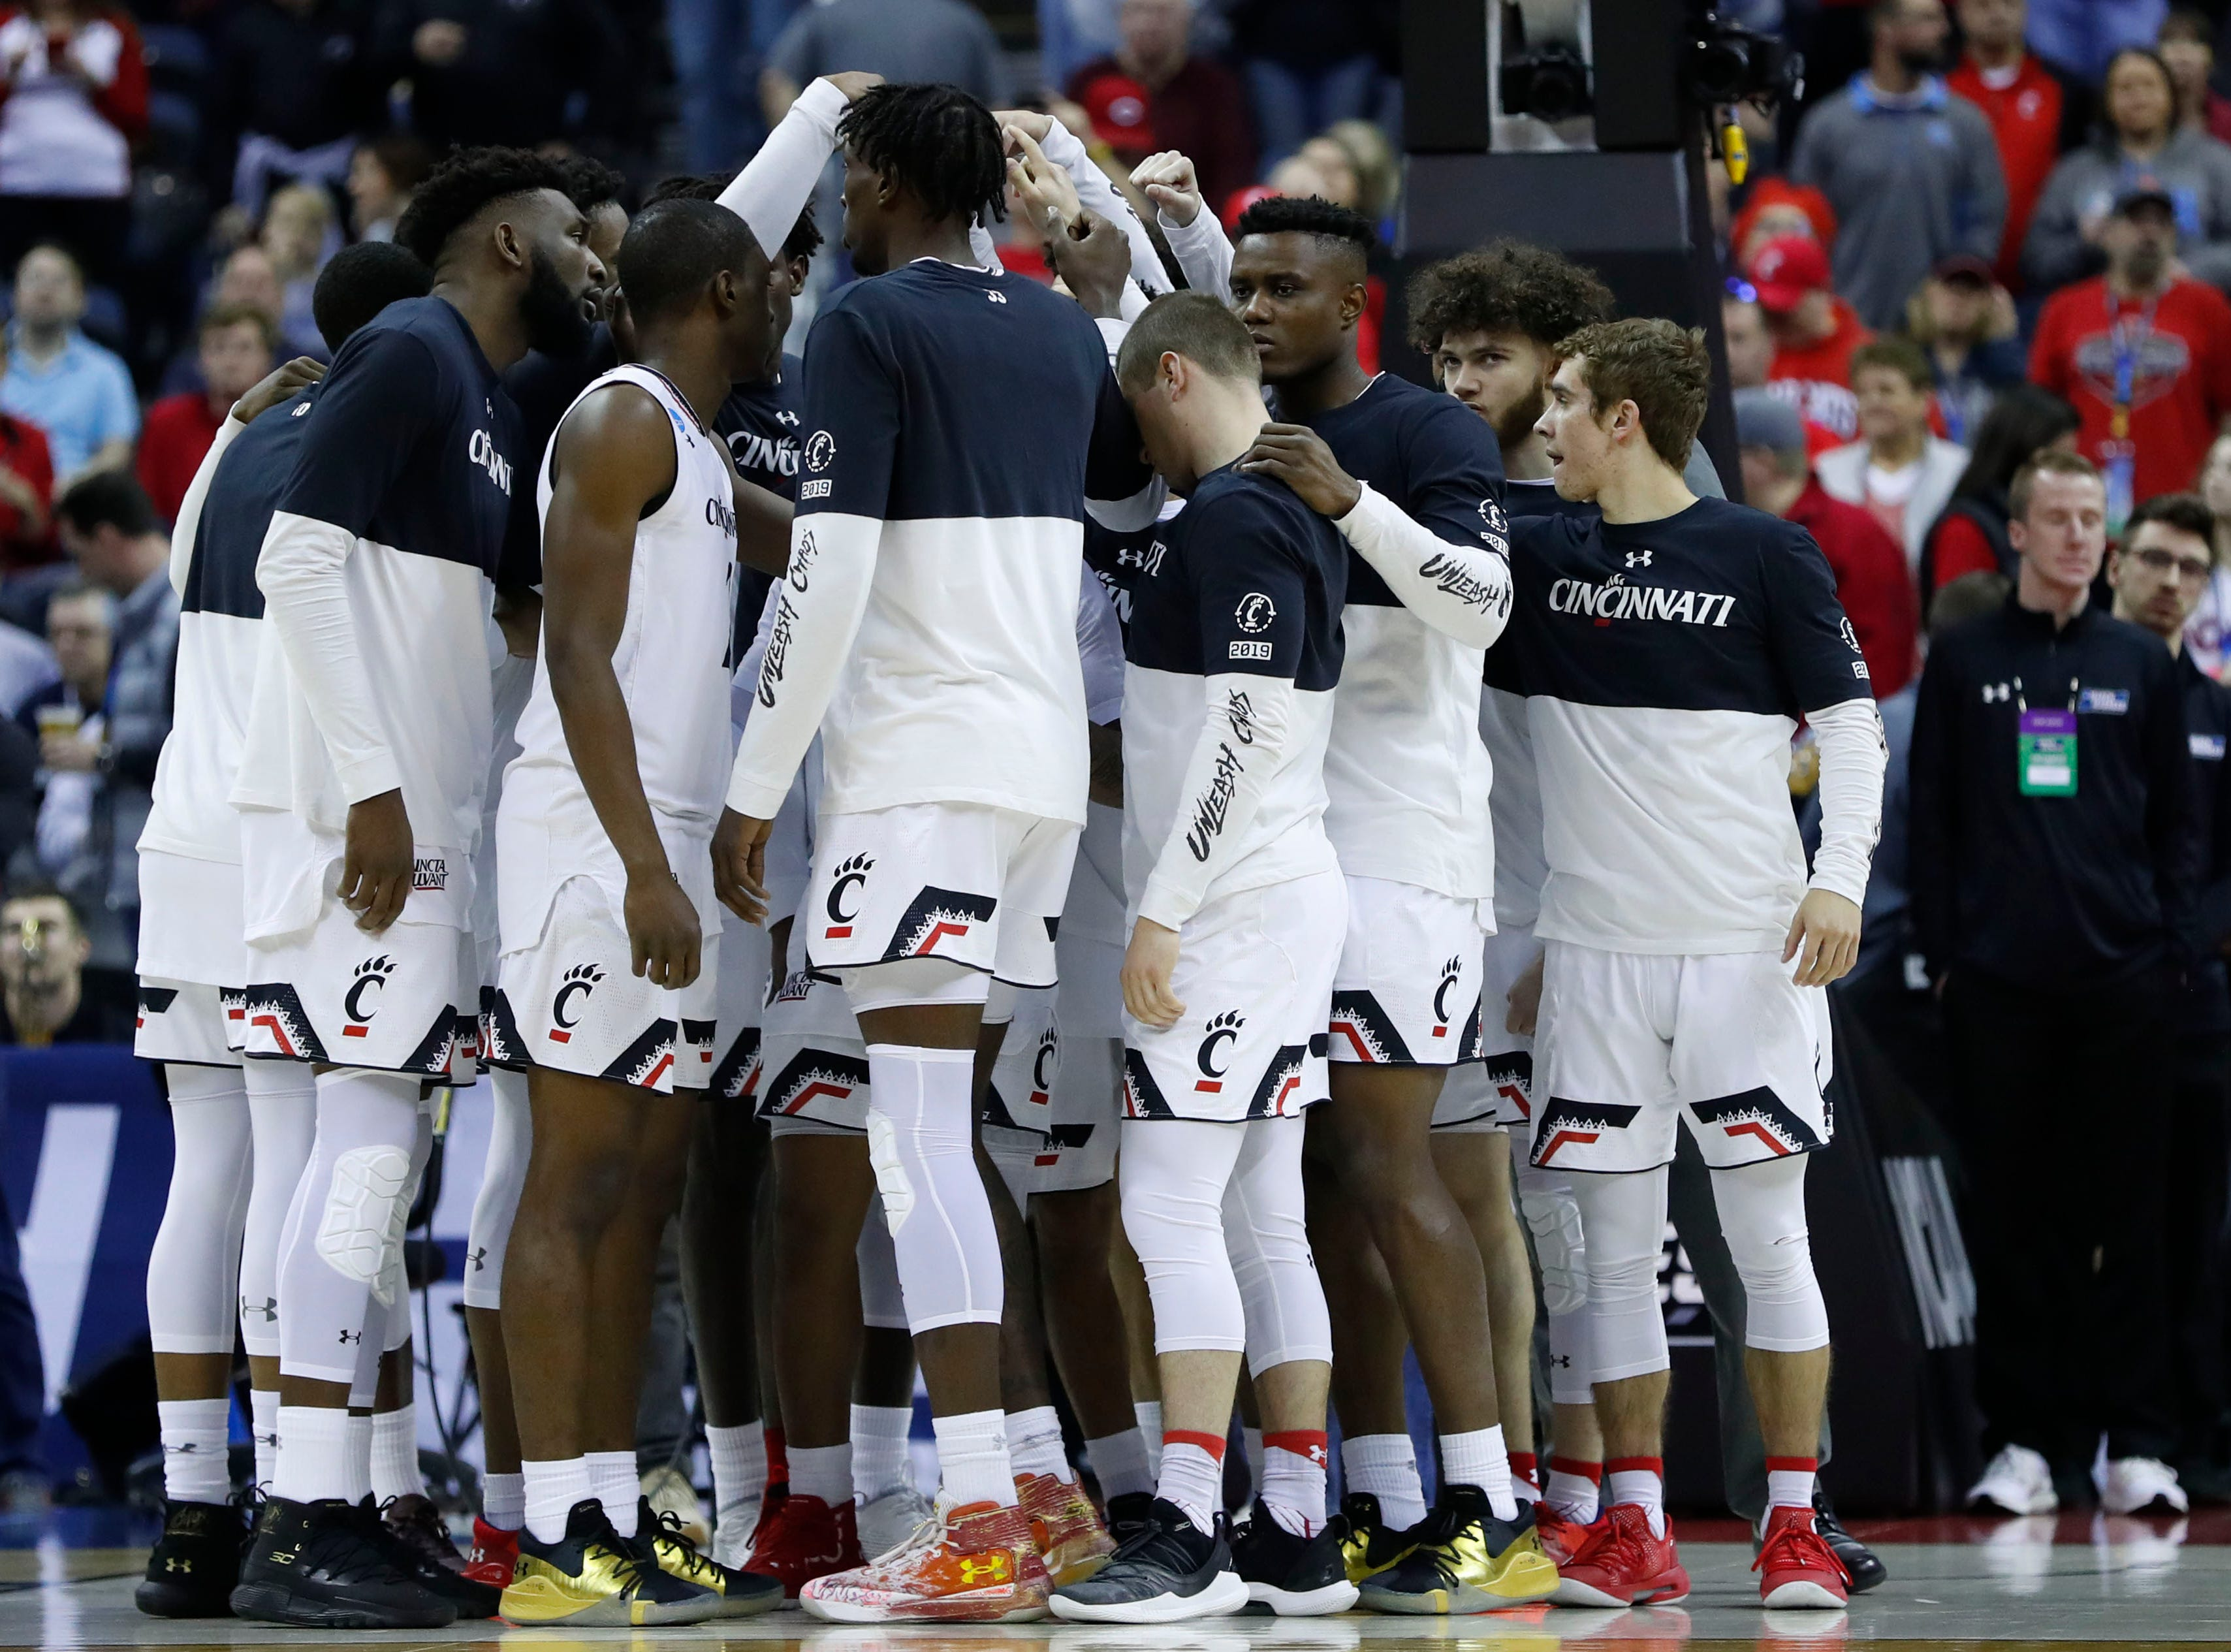 Cincinnati players huddle up before their game against Iowa in the first round of the 2019 NCAA tournament.